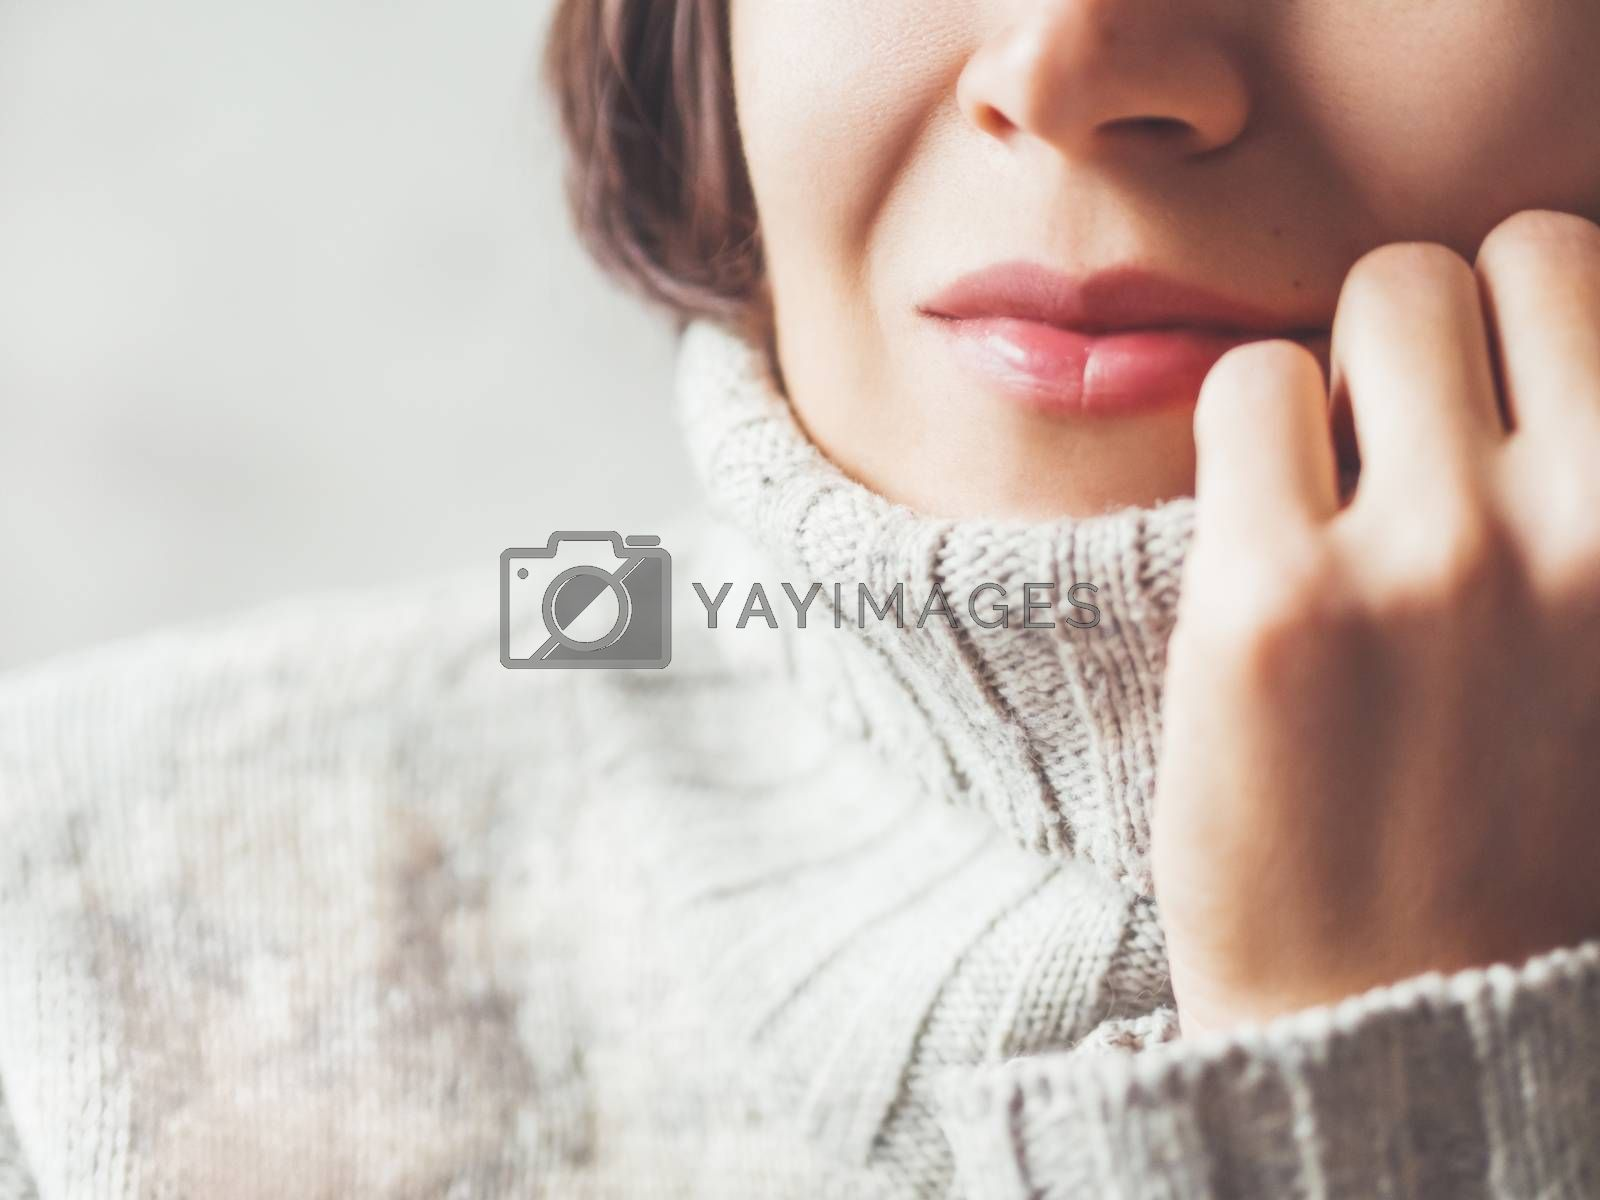 Royalty free image of Close up portrait of woman snuggling in warm grey sweater. Casua by aksenovko